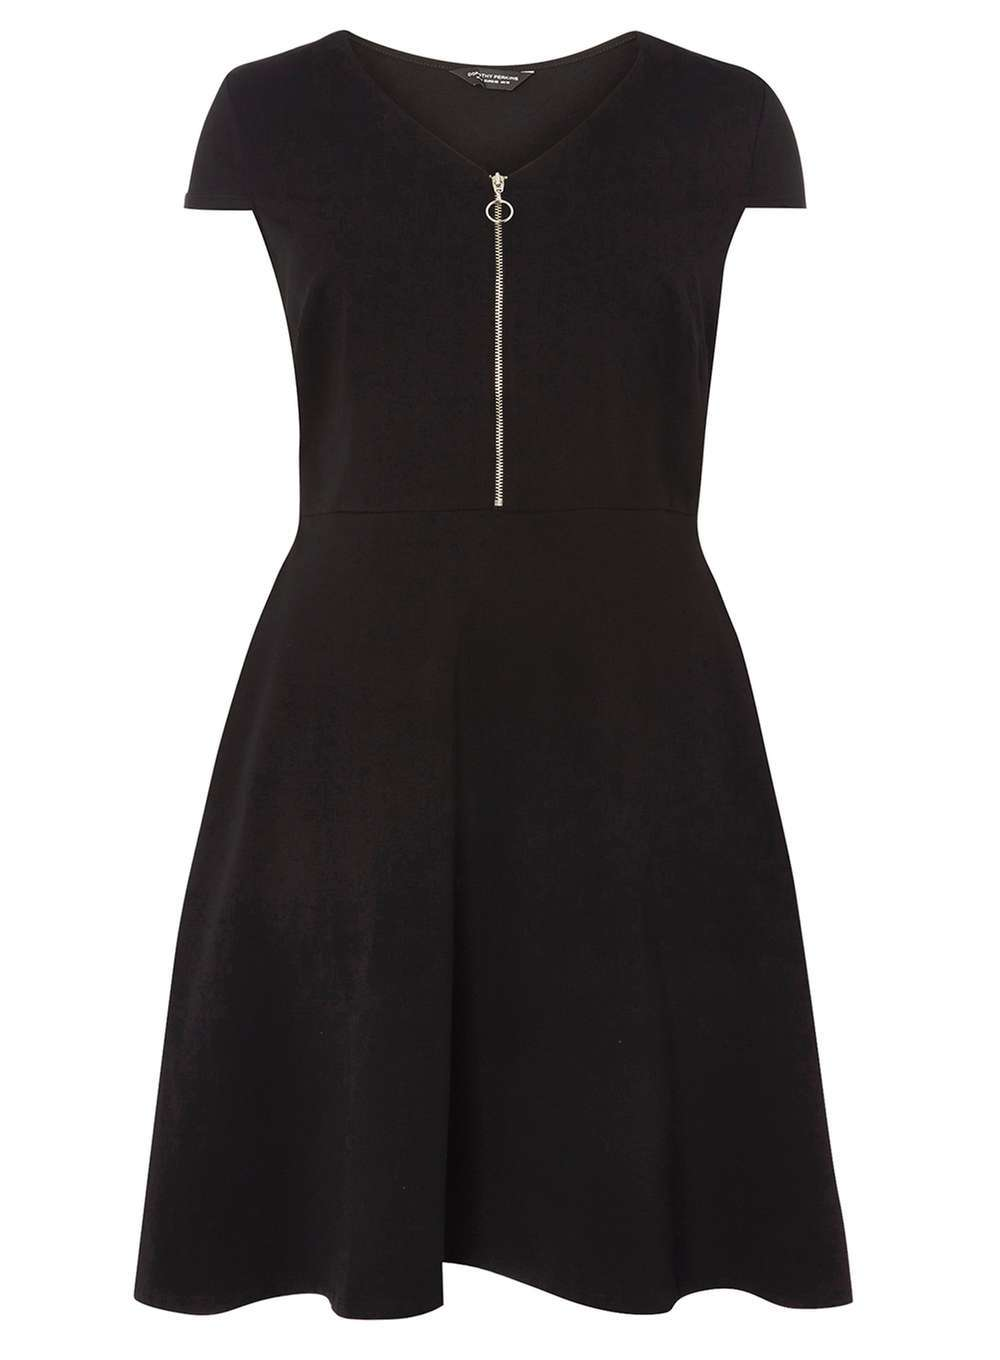 Womens Dp Curve Plus Size Black Zip Front Fit And Flare Dress Black - length: mid thigh; neckline: v-neck; sleeve style: capped; pattern: plain; predominant colour: black; occasions: evening; fit: fitted at waist & bust; style: fit & flare; fibres: cotton - stretch; sleeve length: short sleeve; pattern type: fabric; texture group: jersey - stretchy/drapey; season: a/w 2016; wardrobe: event